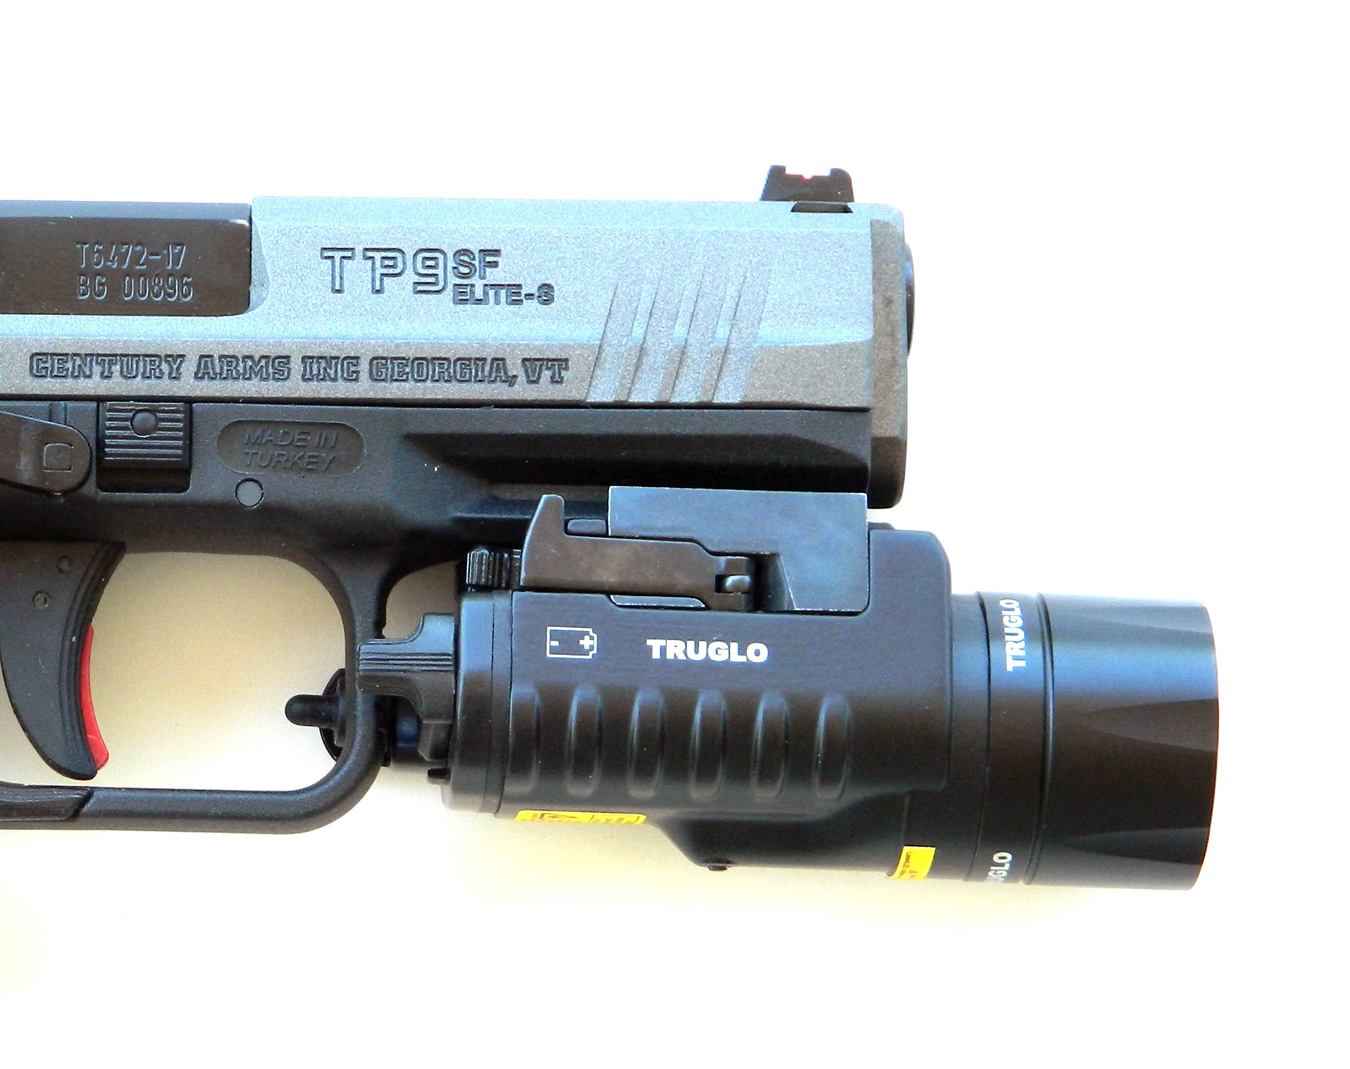 TP9 SF Elite S fitted with a TruGlo light